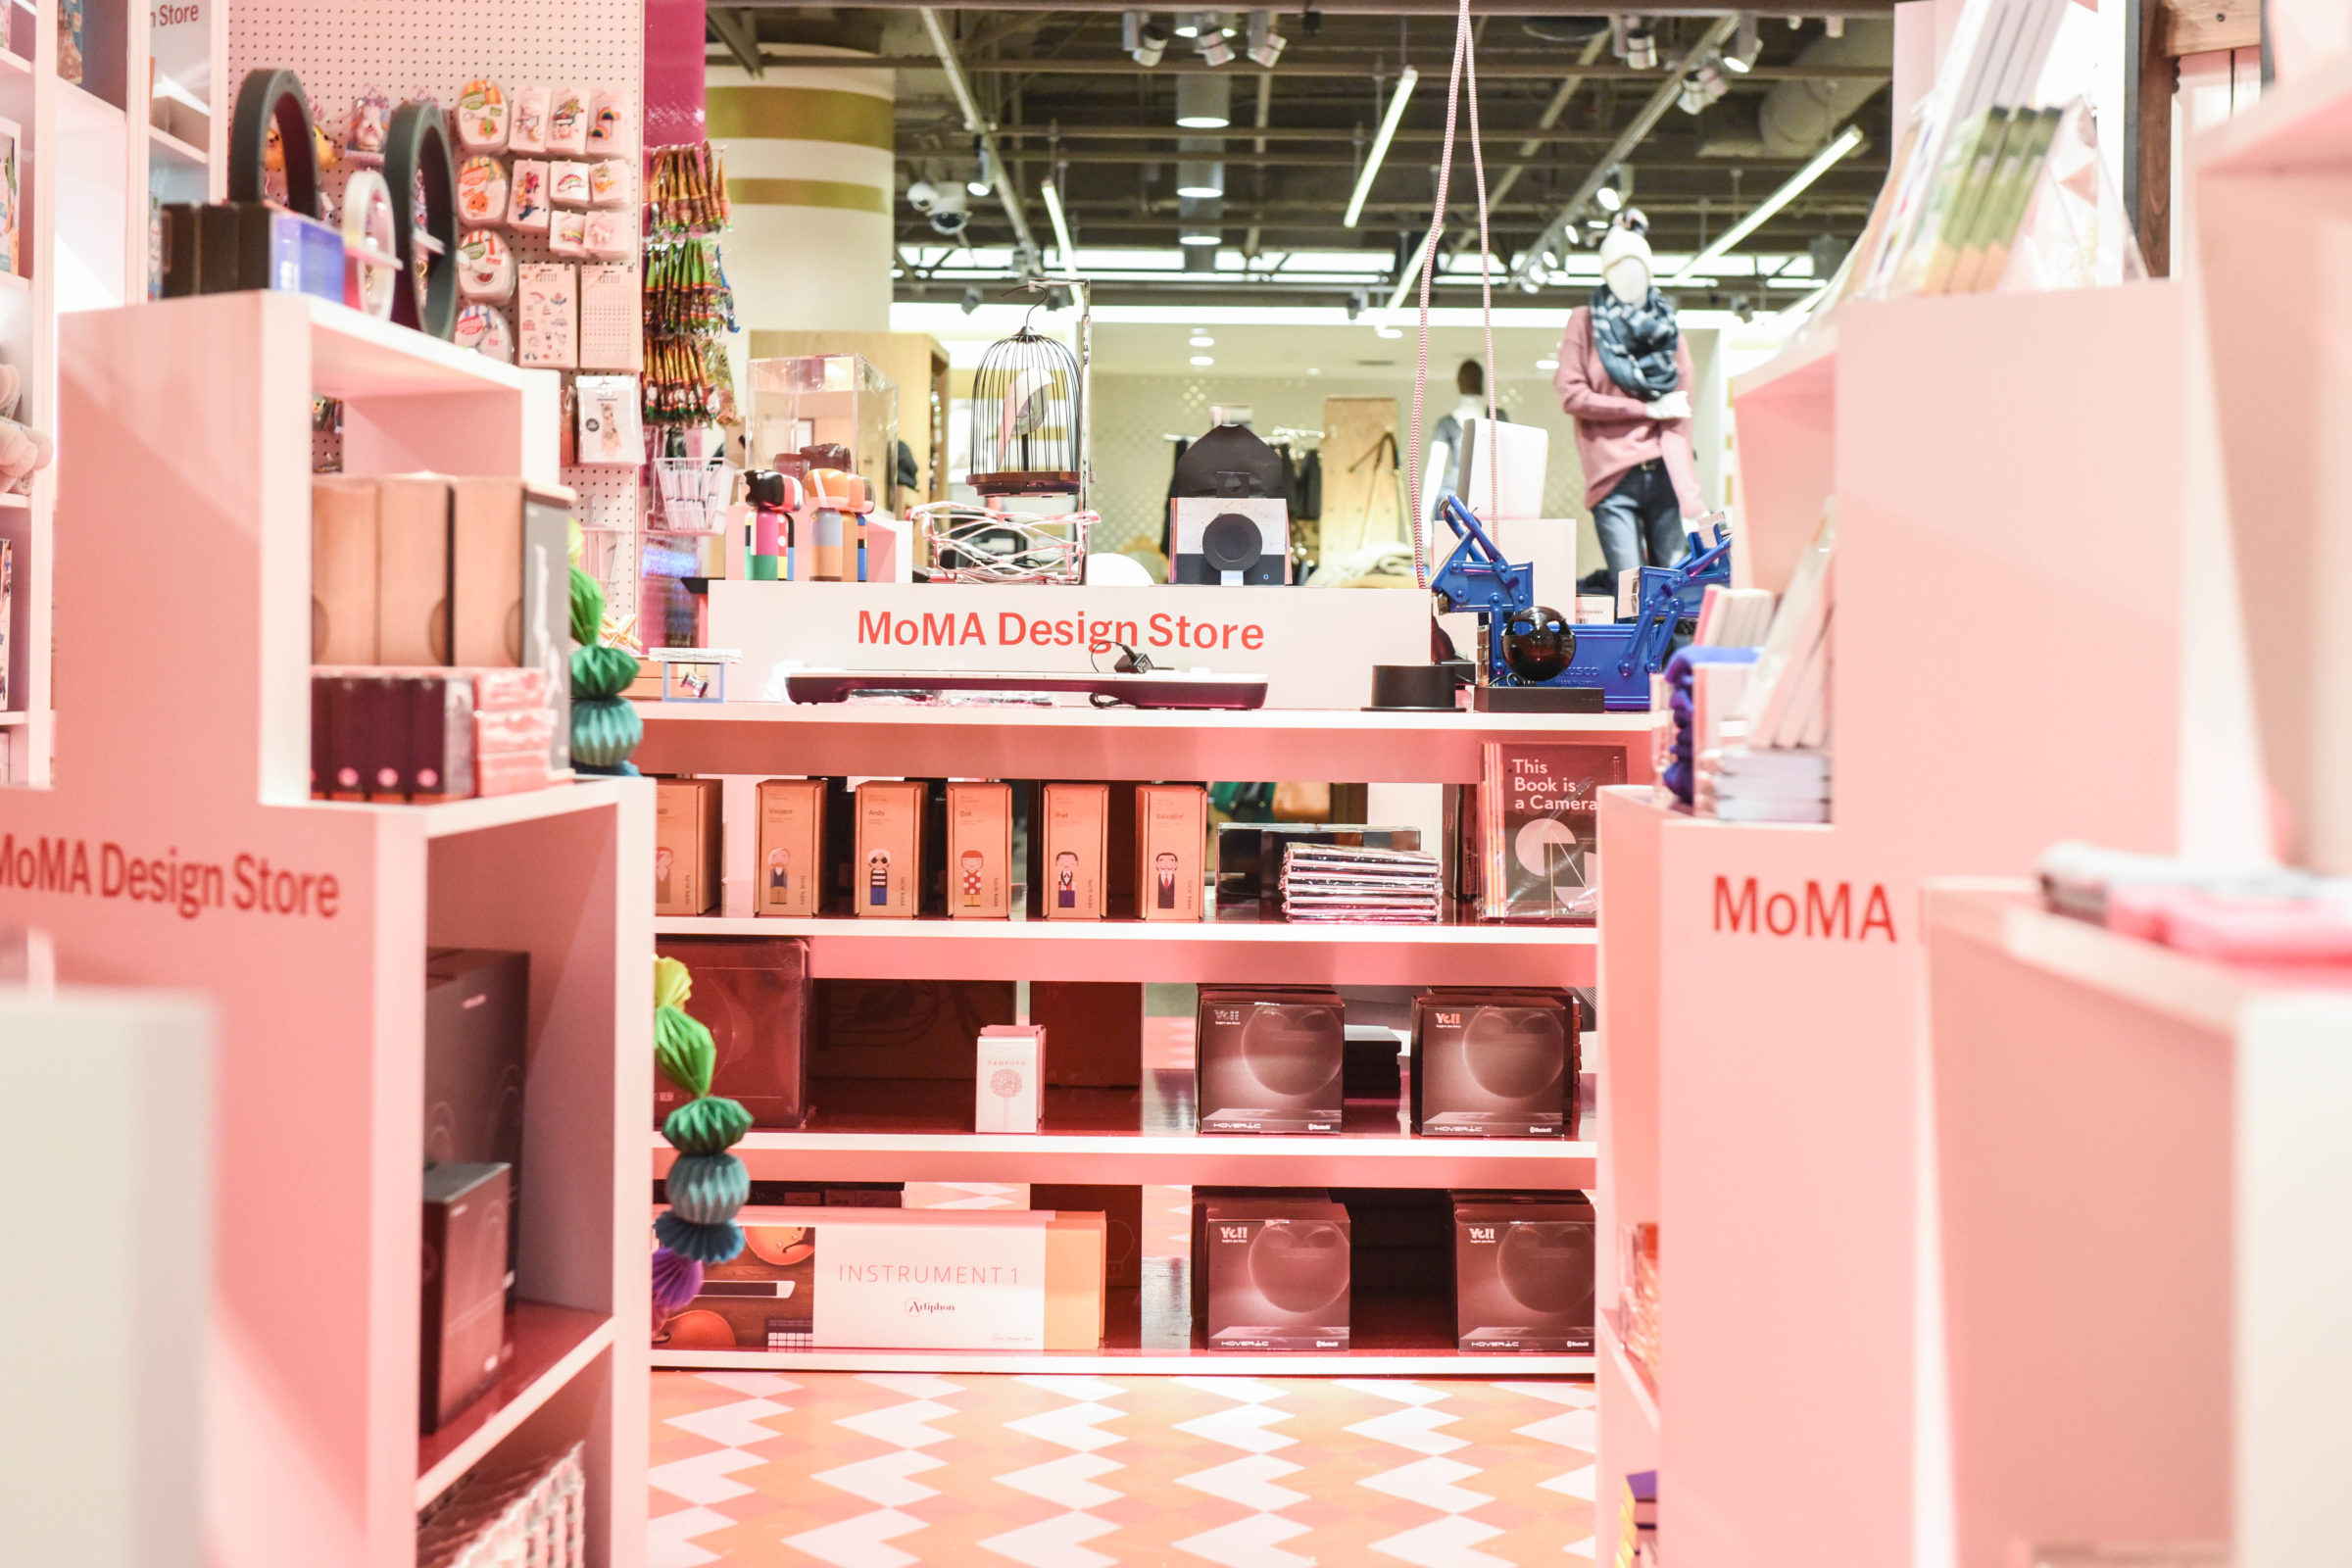 POP-IN@NORDSTROM Holiday Featuring MoMA Design Store - Vanguard ...